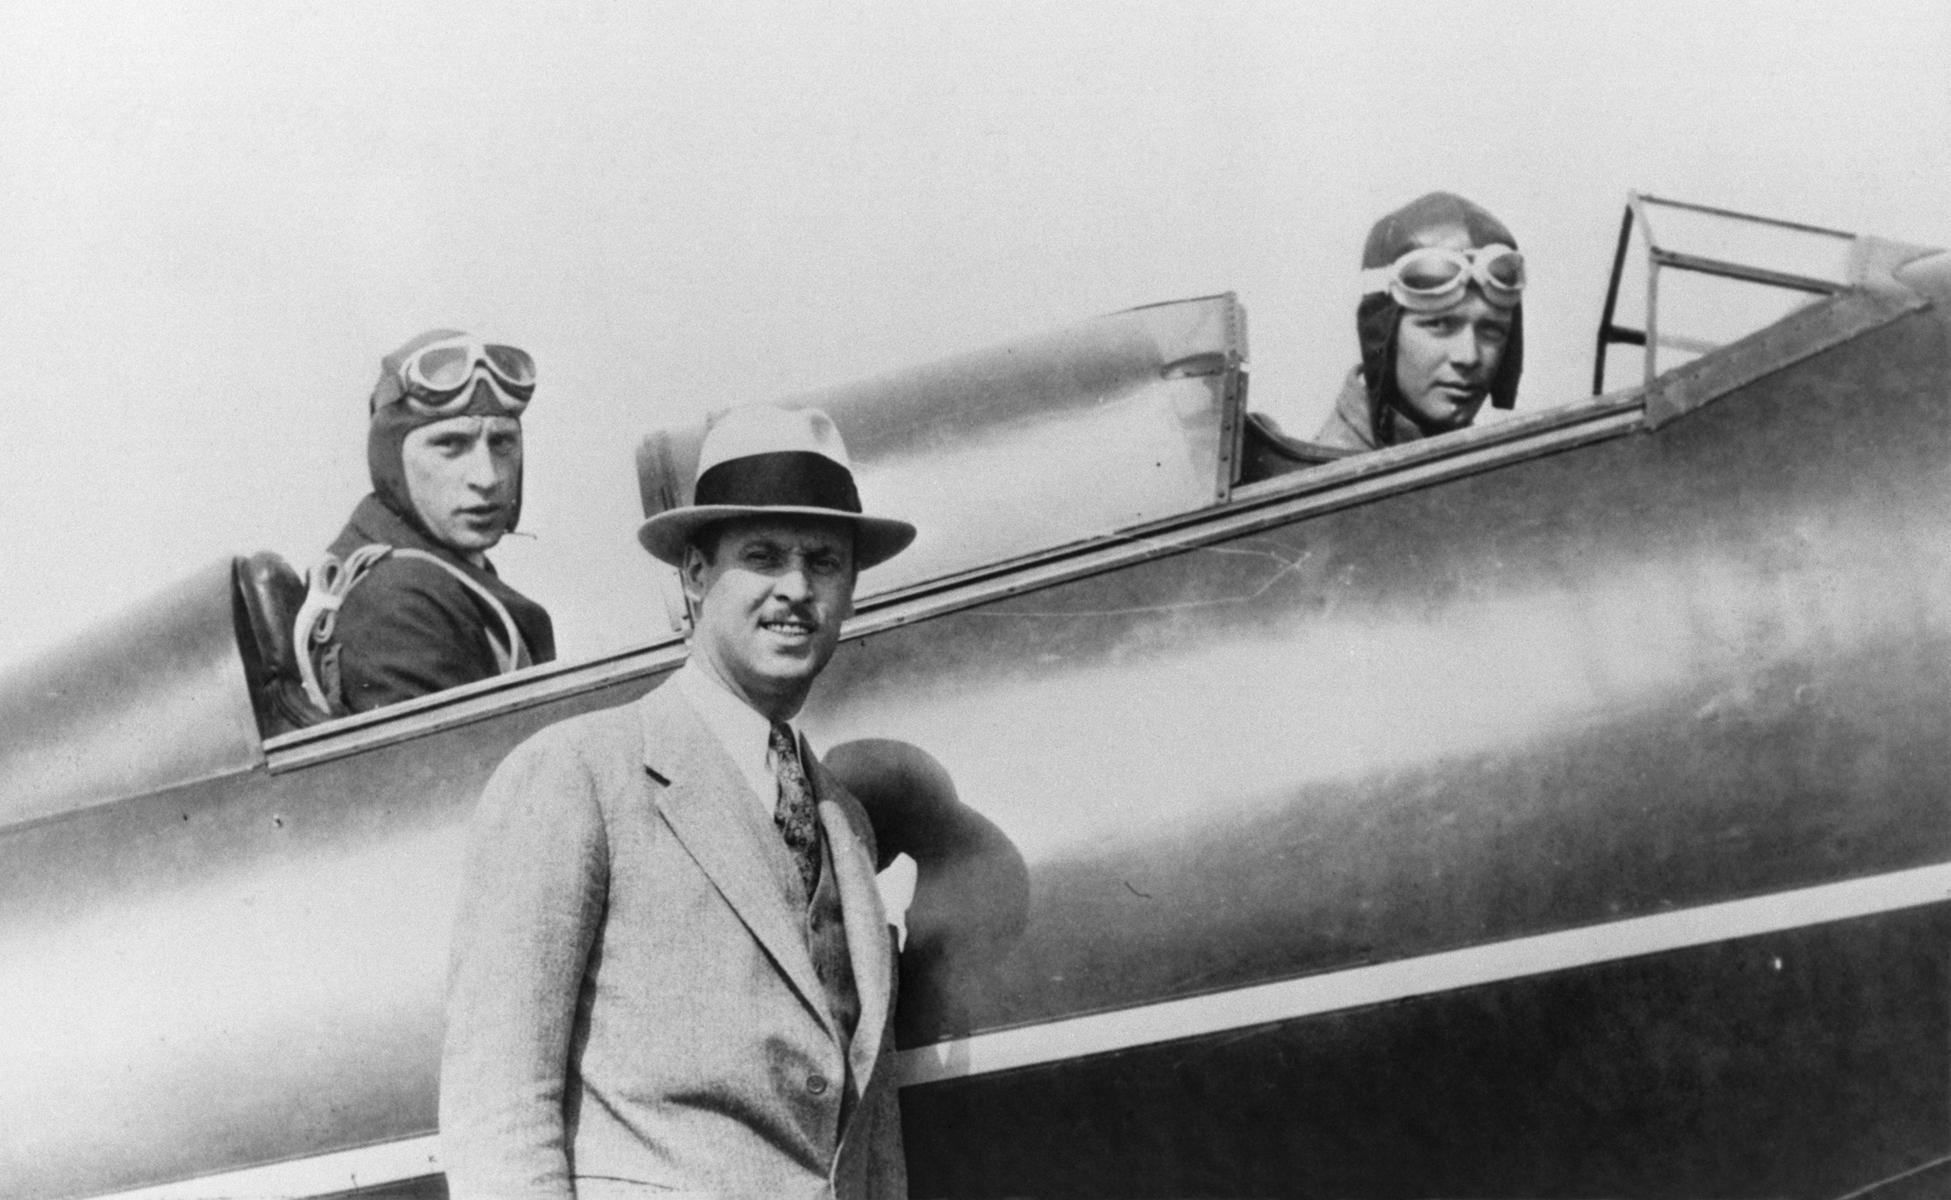 1929 Propeller Research Tunnel Charles Lindbergh Hamilton-Weick Aviation Photo